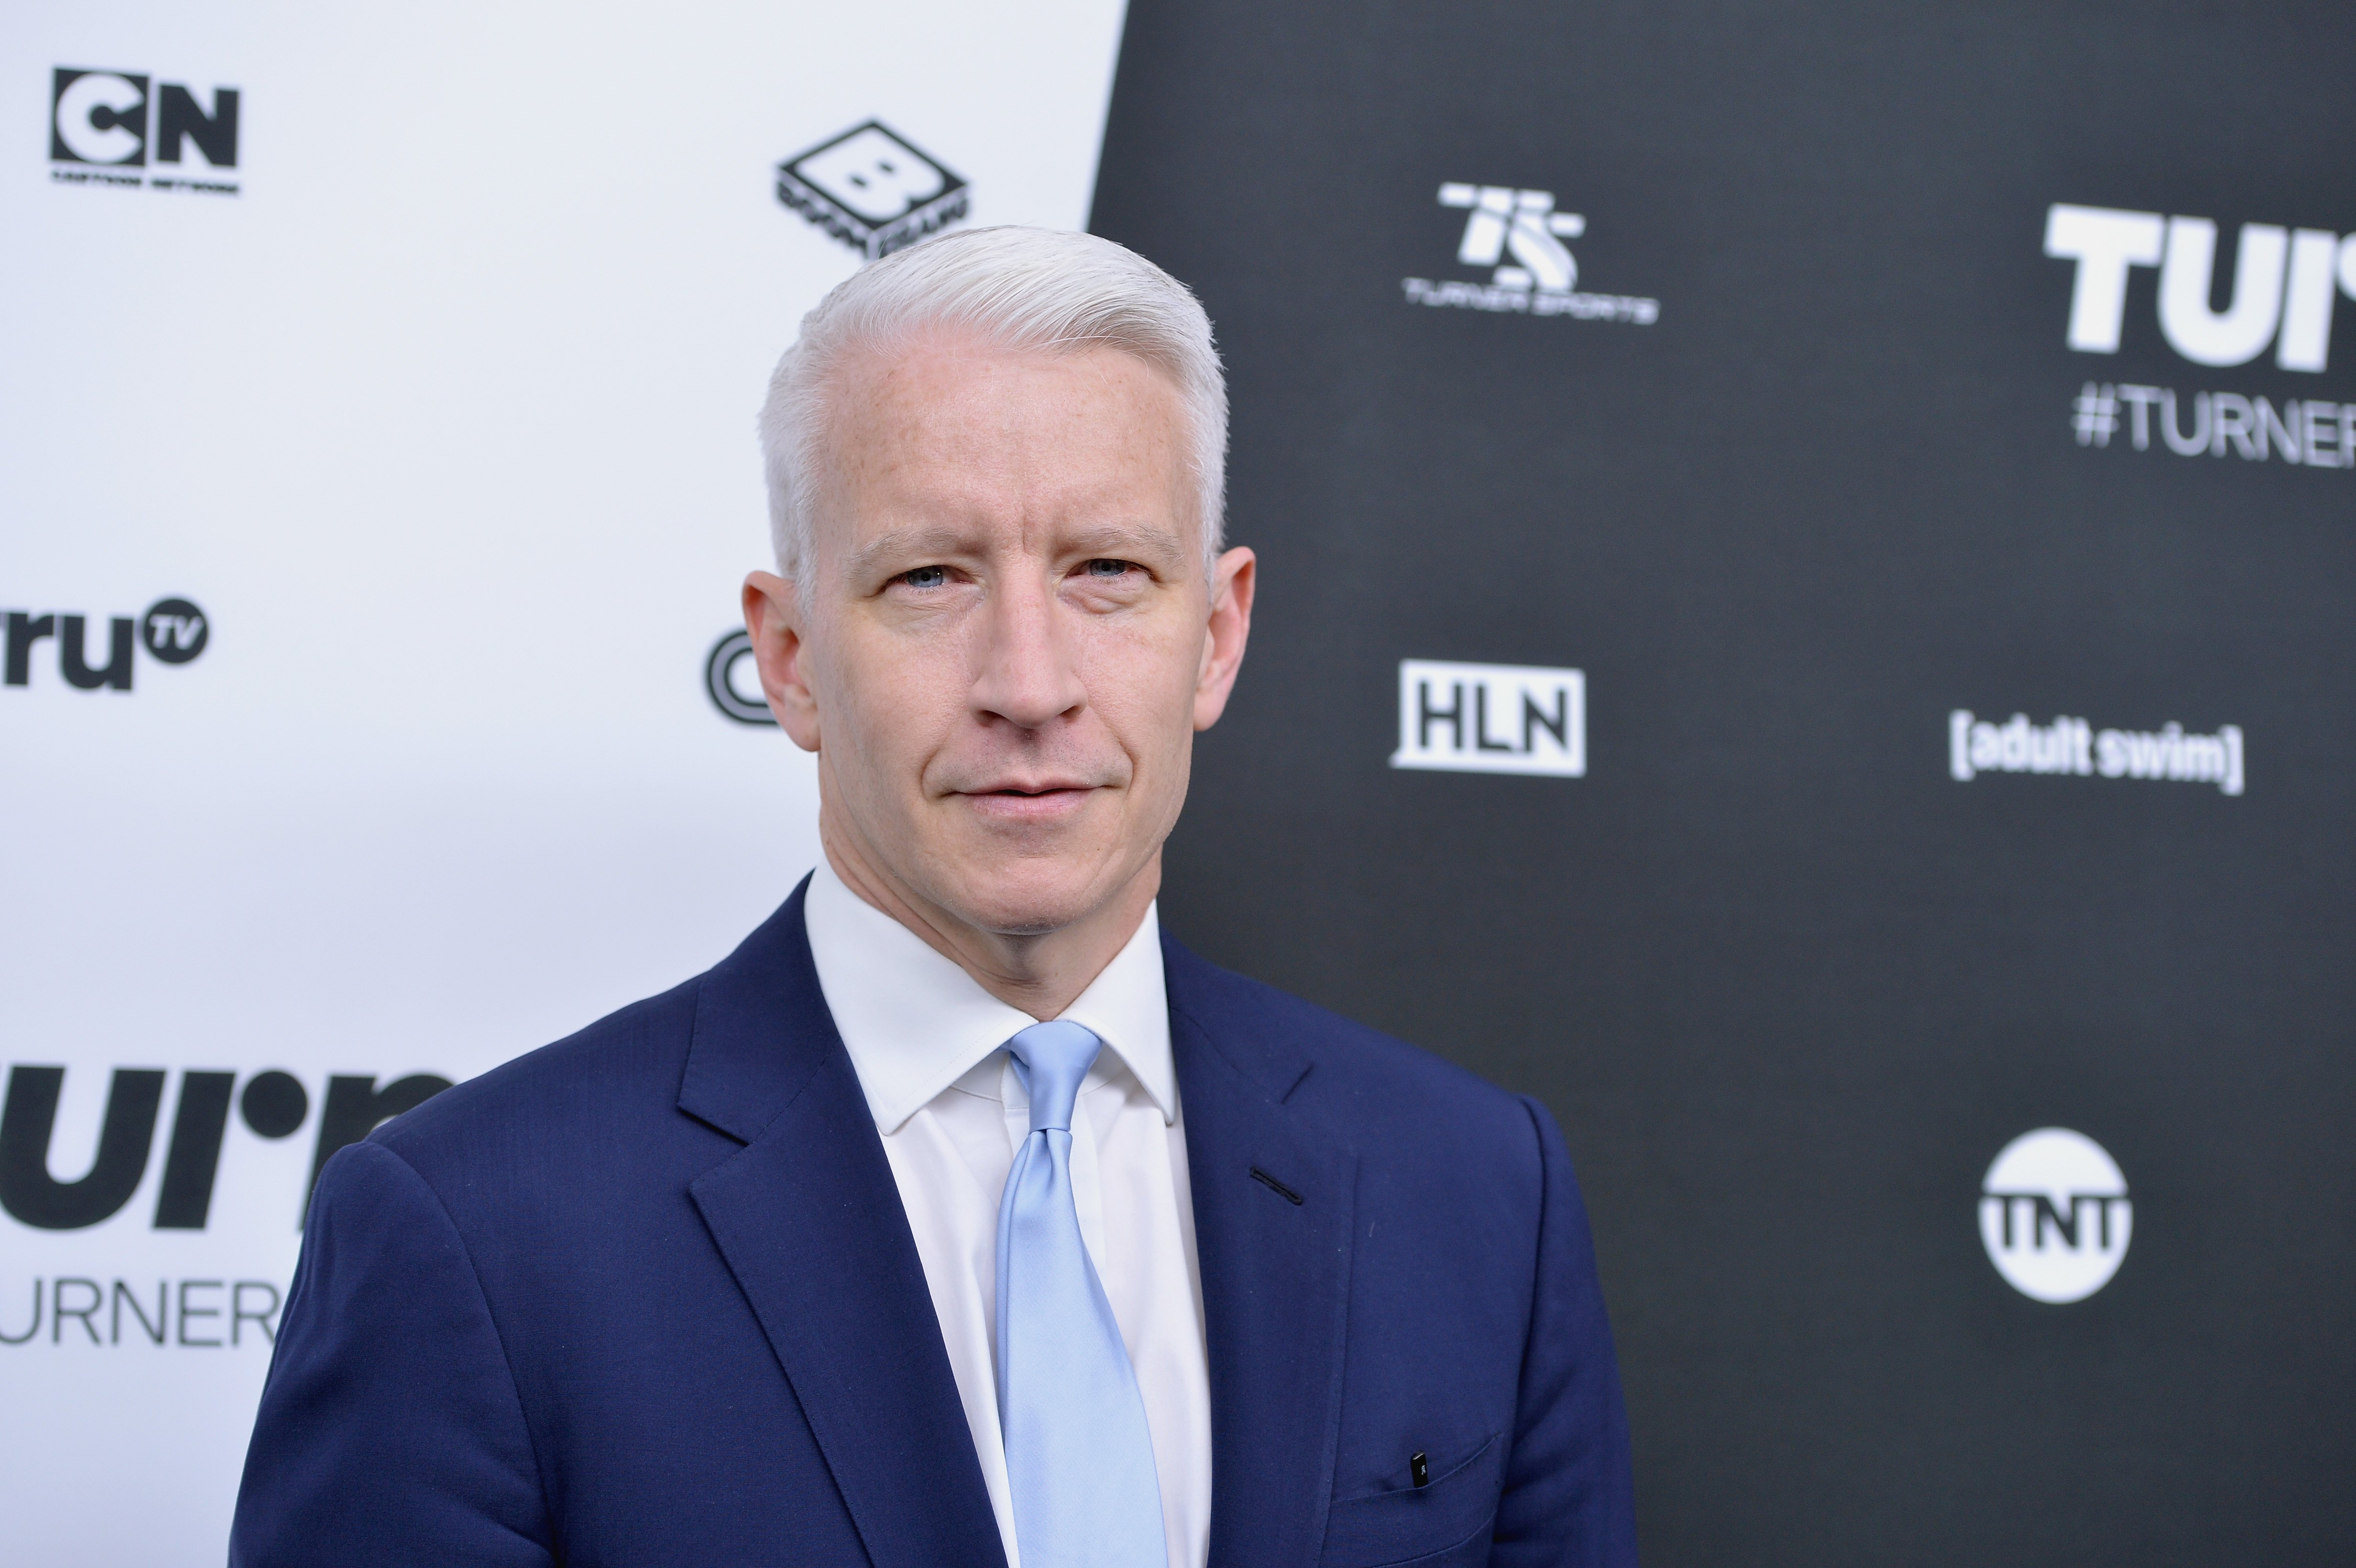 Anderson Cooper attends the Turner Upfront 2016 at Nick & Stef's Steakhouse on May 18, 2016 in New York City   Photo: Getty Images